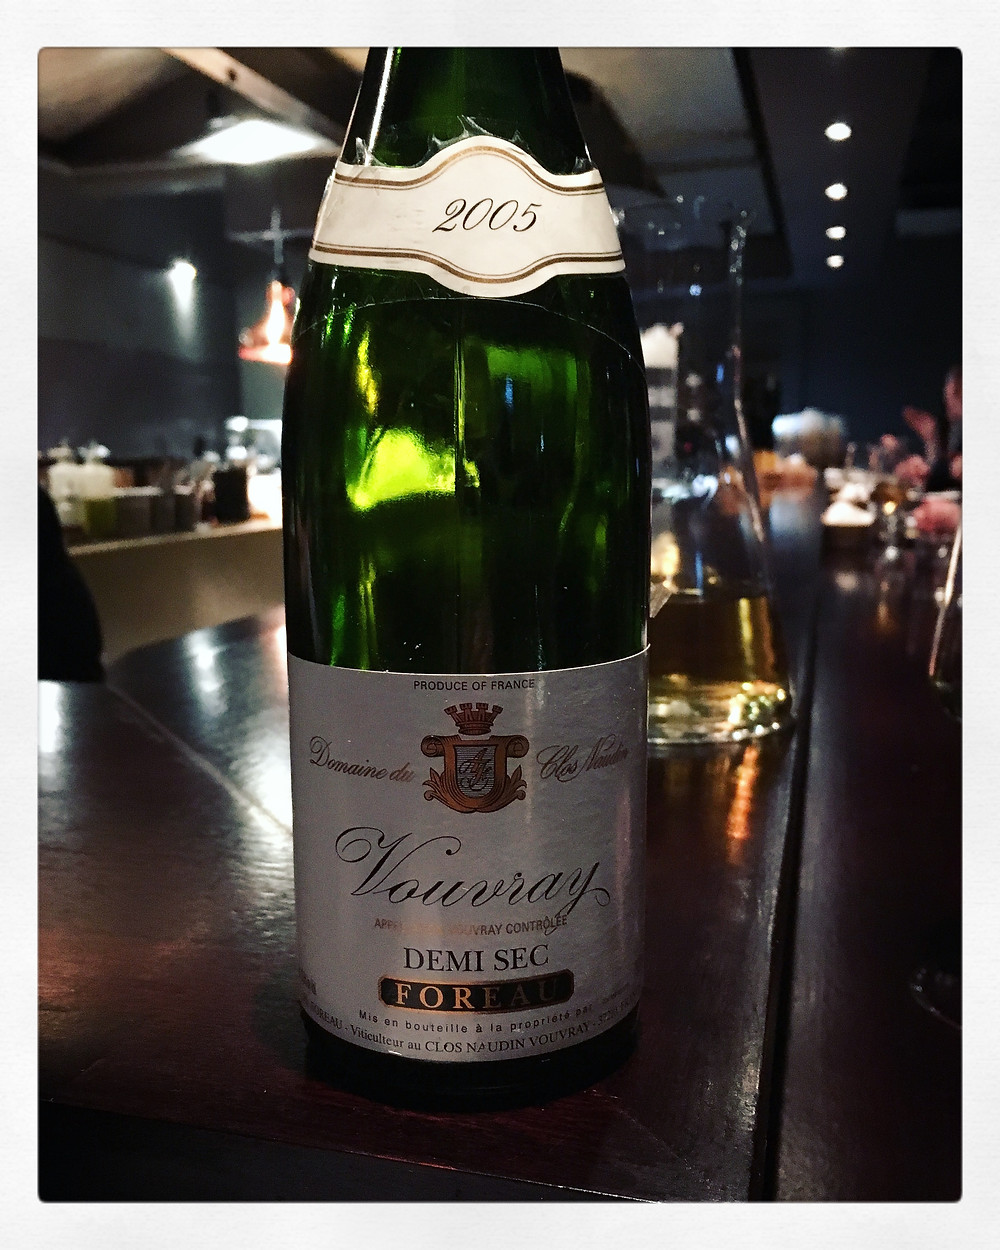 Ôter | 2005 Foreau Phillippe Vouvray